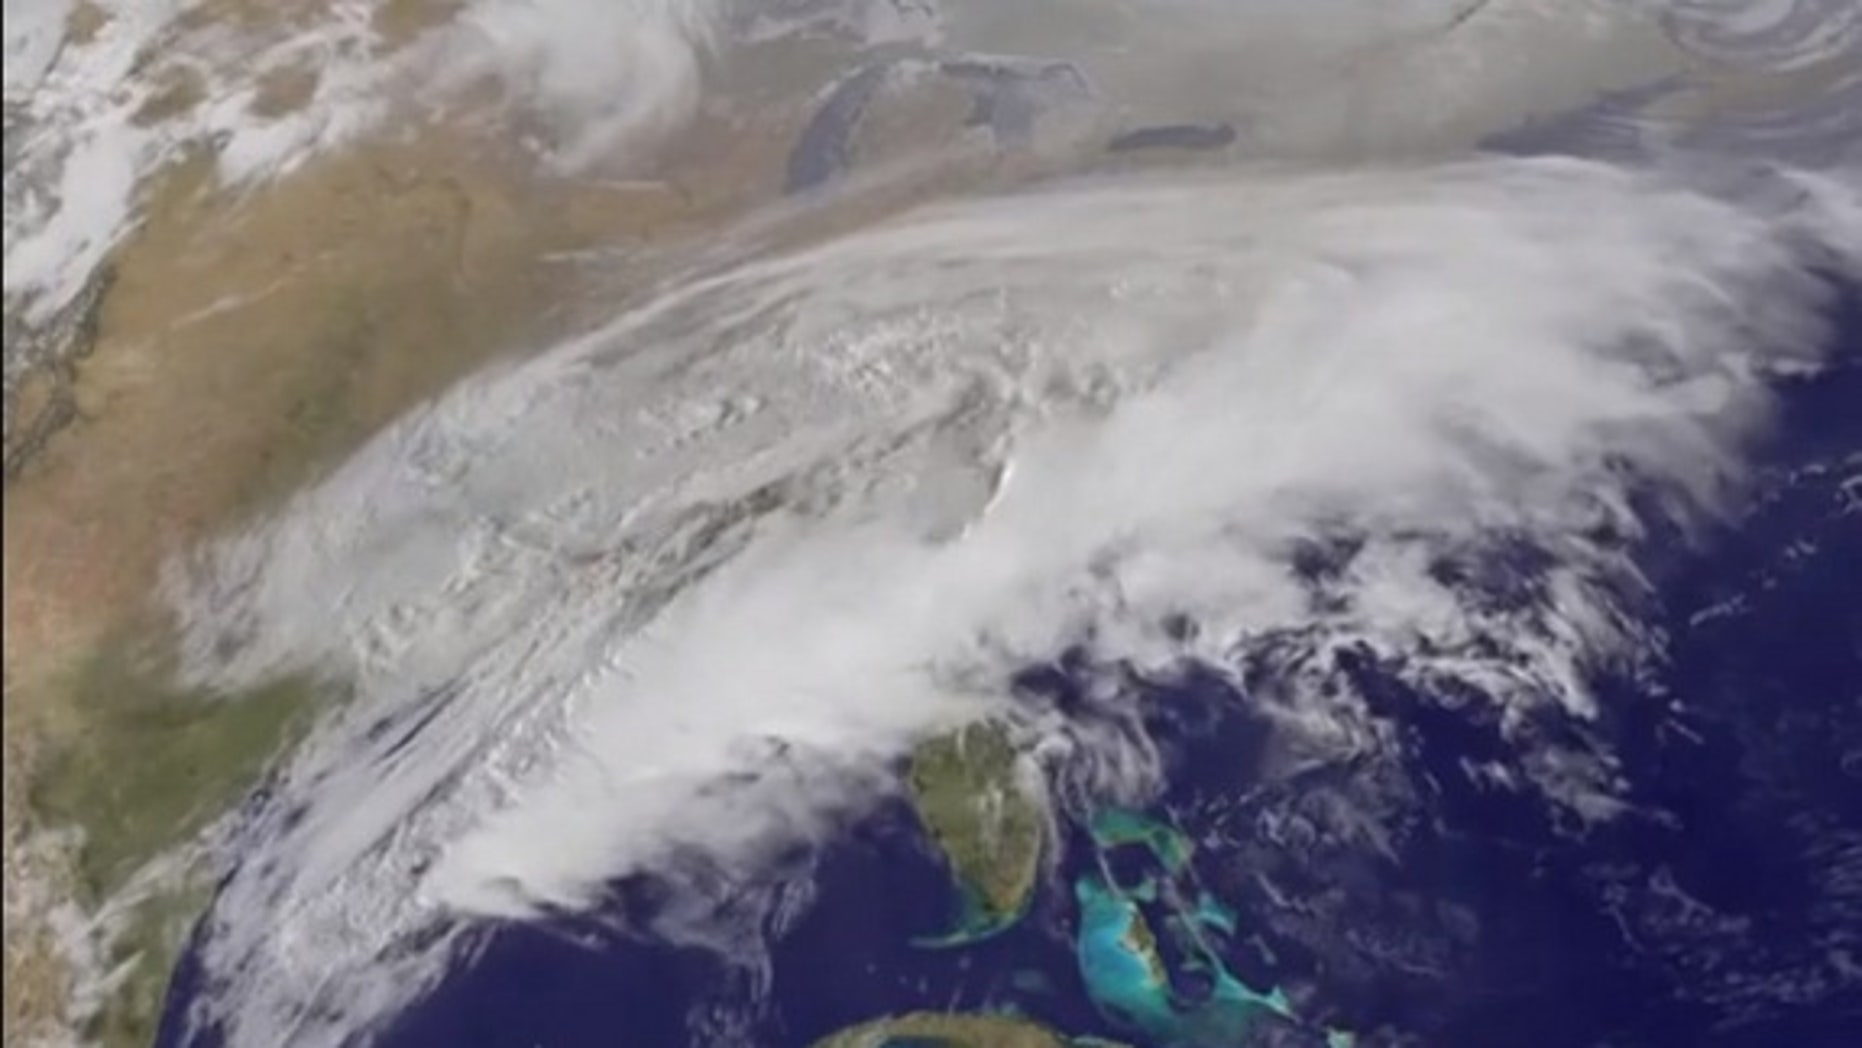 NOAA's GOES satellite captured the progression of another major winter storm over the U.S. Mid-Atlantic on March 16 and 17.